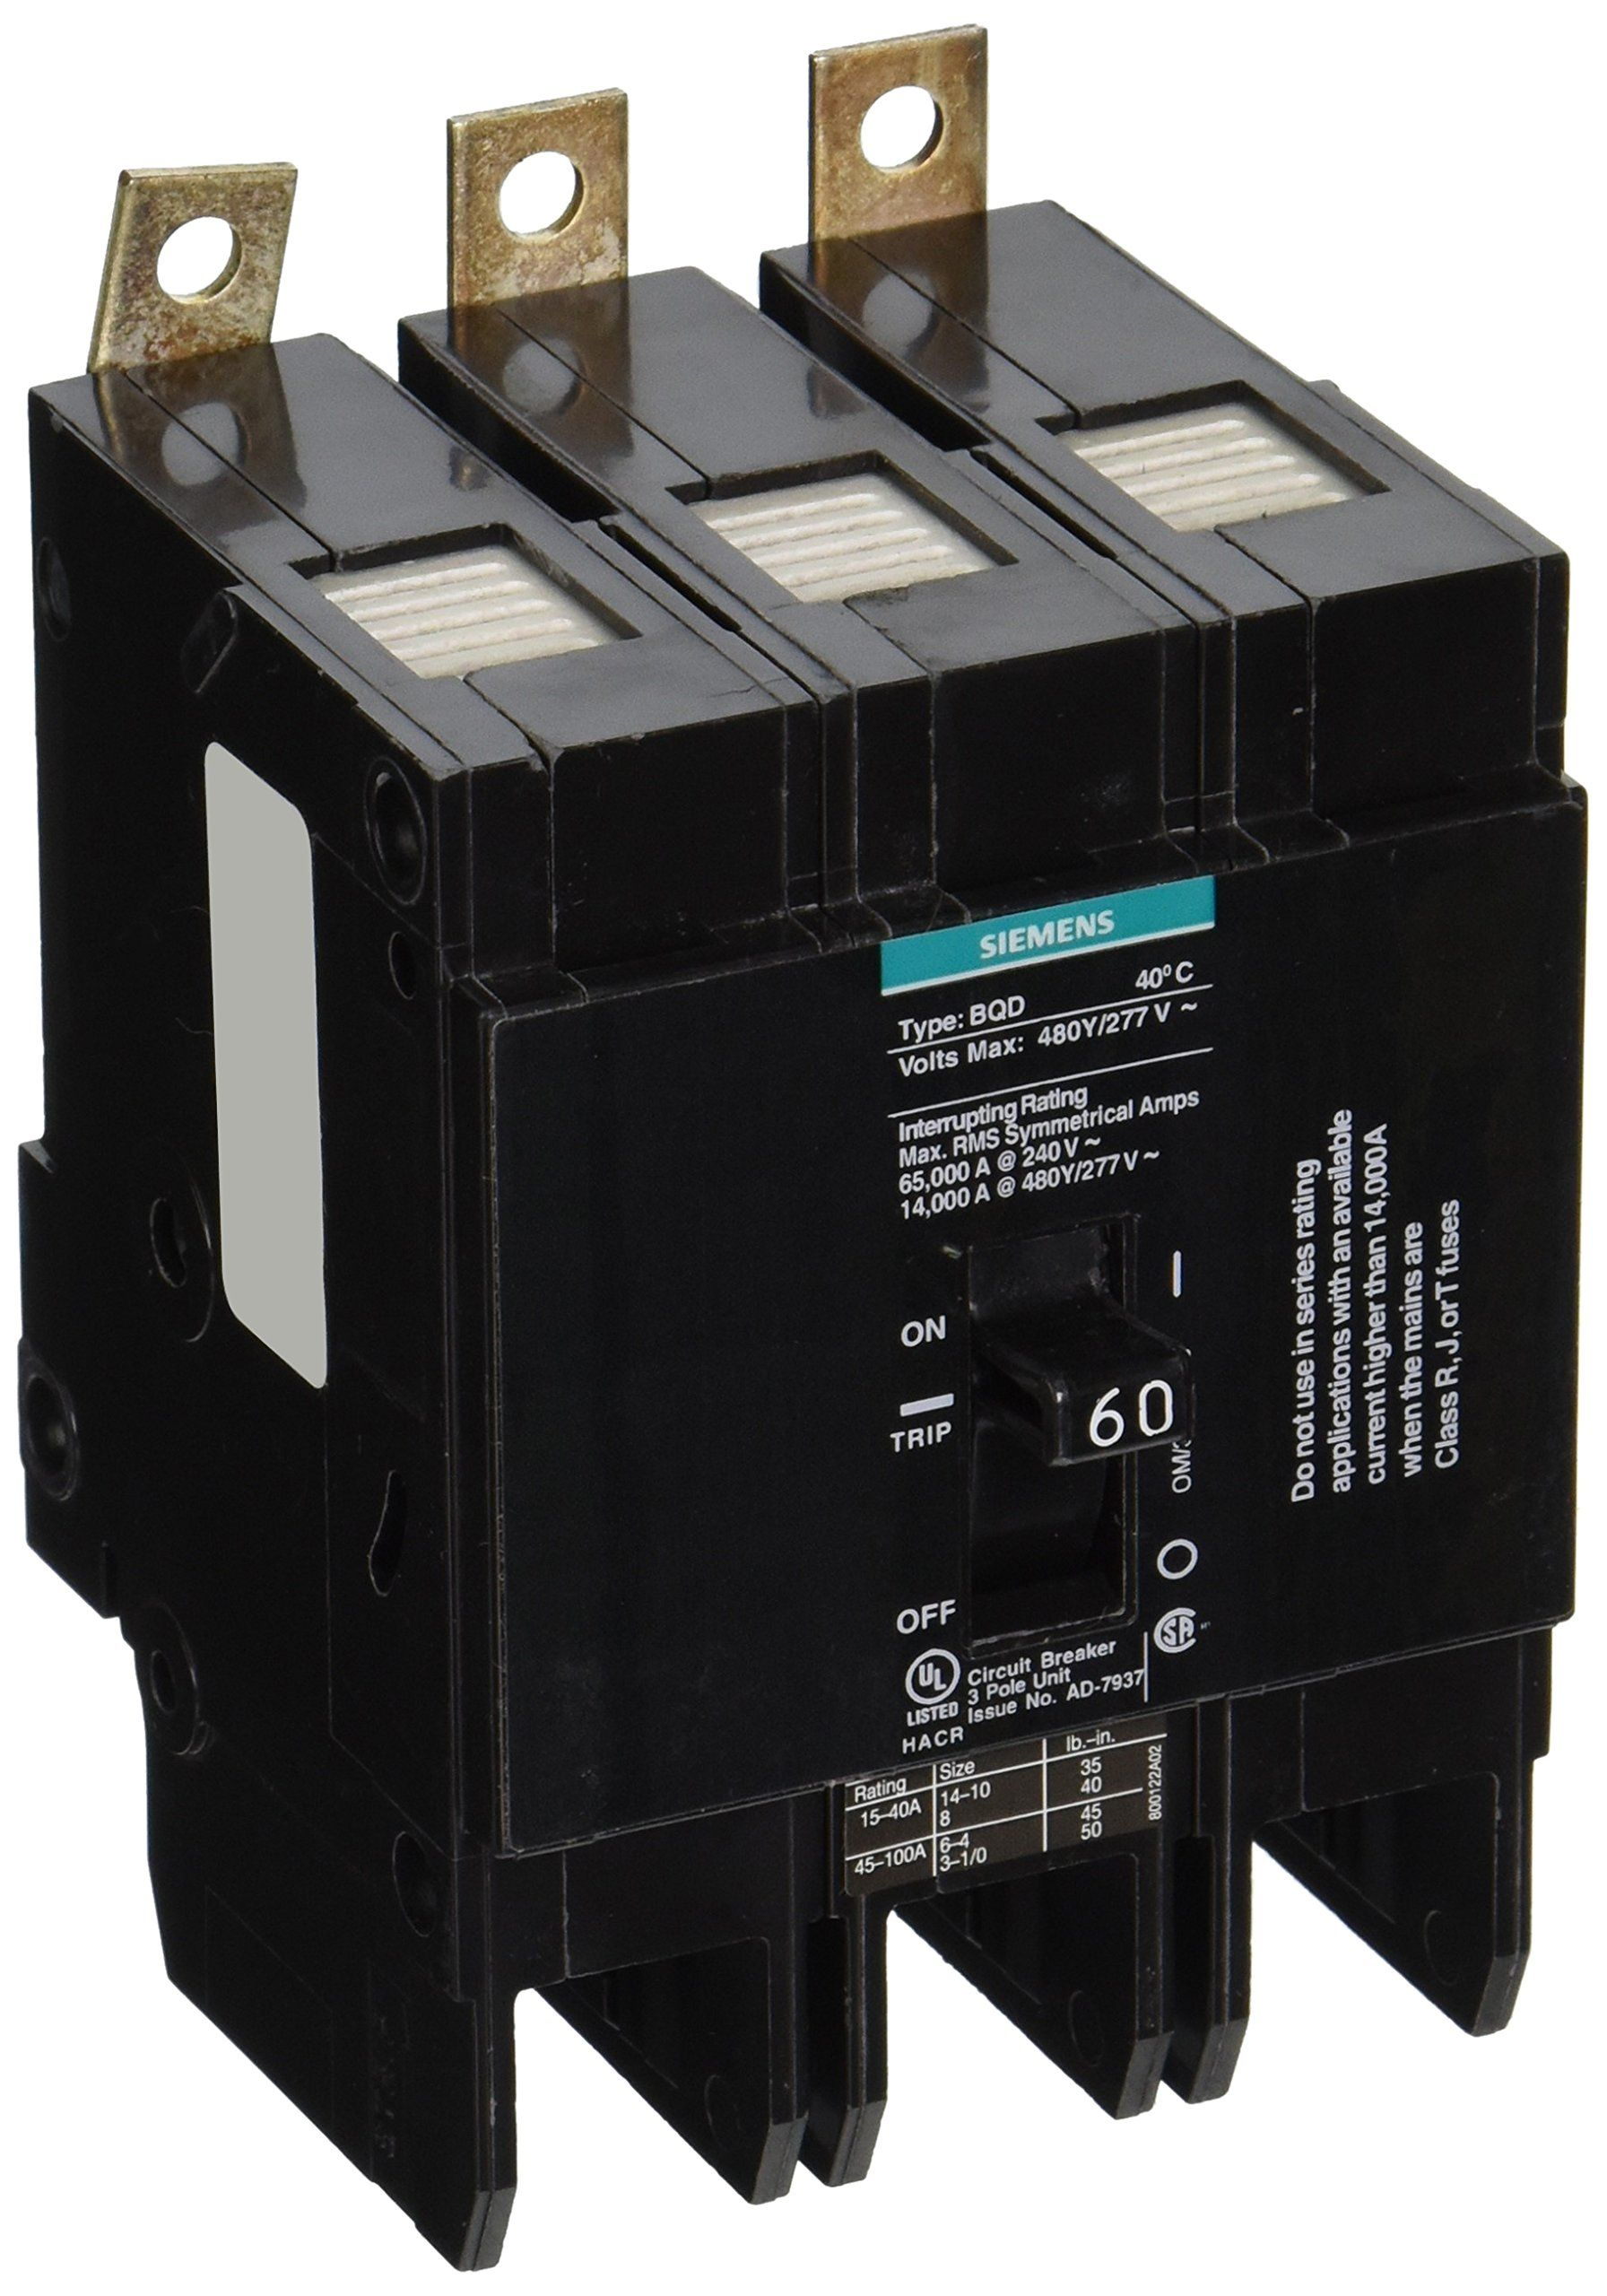 Siemens Bqd360 60amp Three Pole 480y 277v Ac 14kaic Bolt In Breaker Be Sure To Check Out This Awesome Product This Is A Siemens Breakers Pole Construction